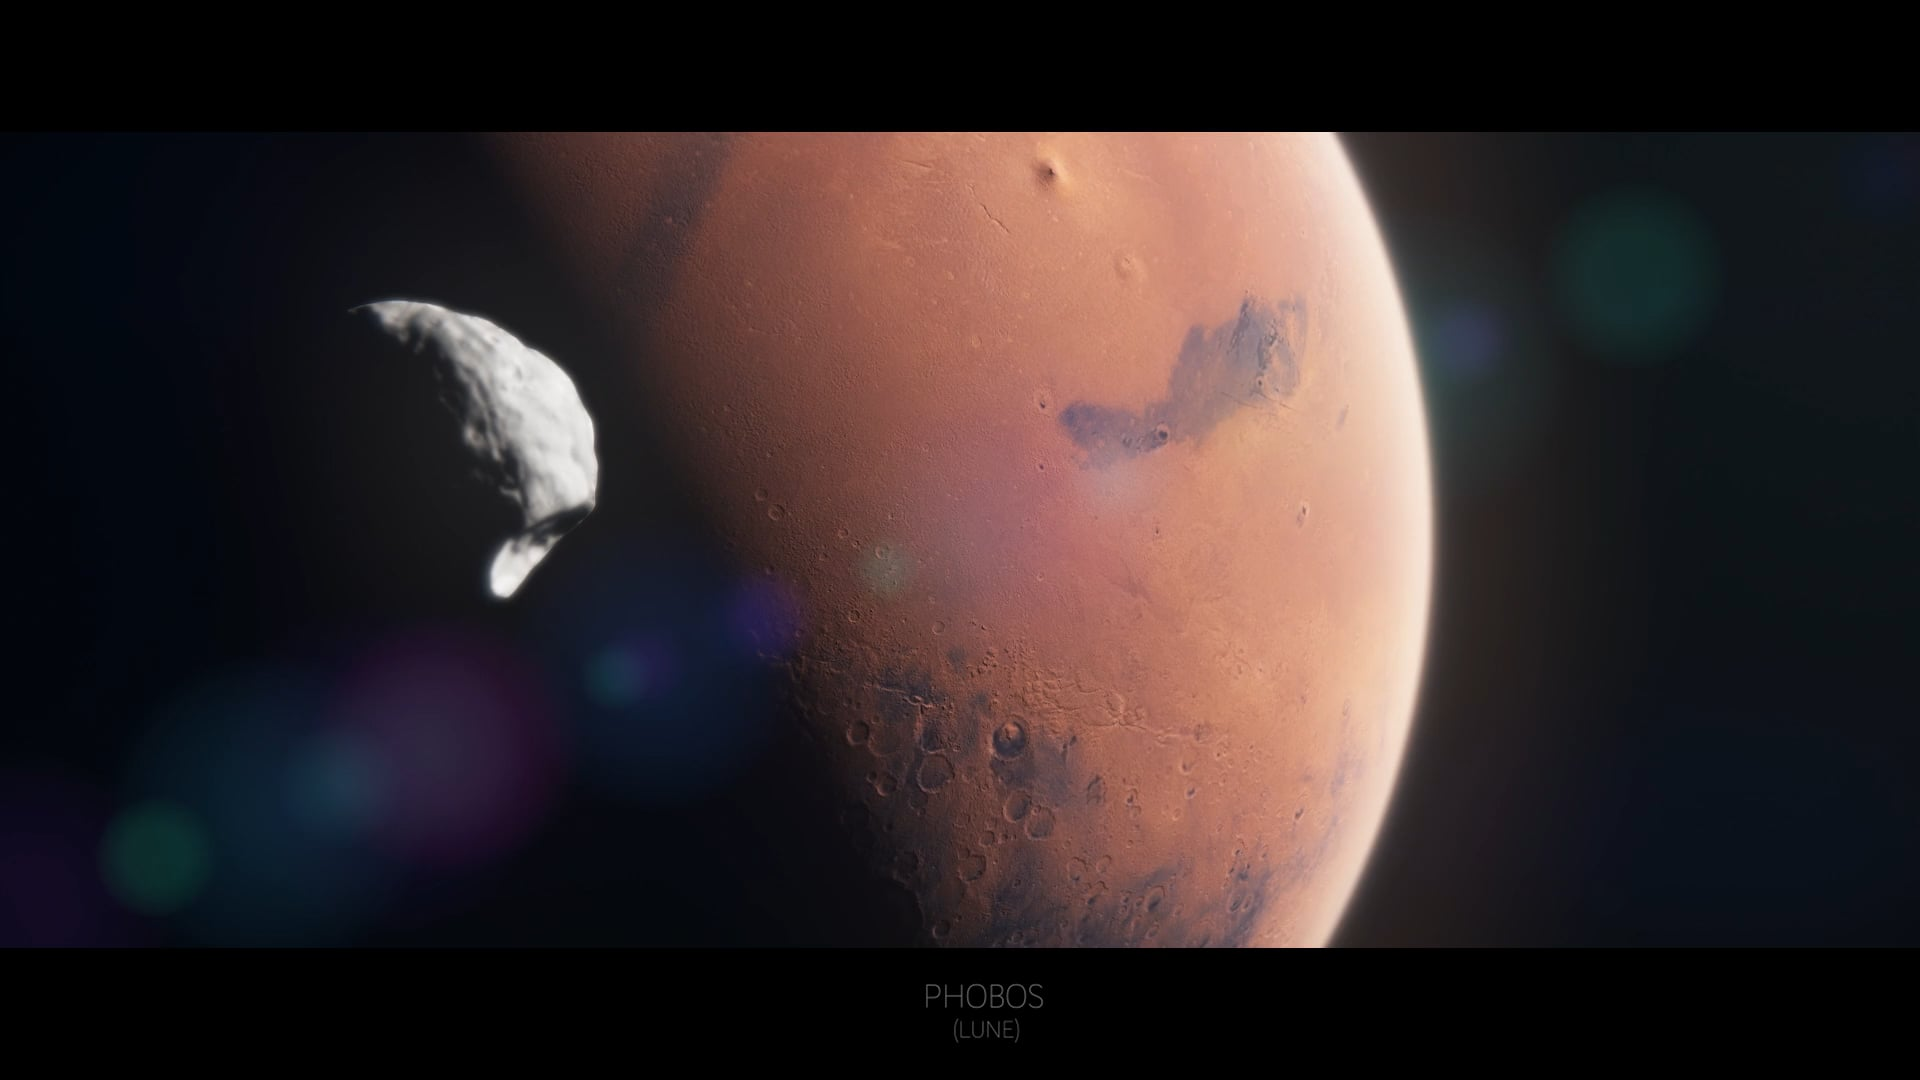 CNES : FLYING OVER MARS